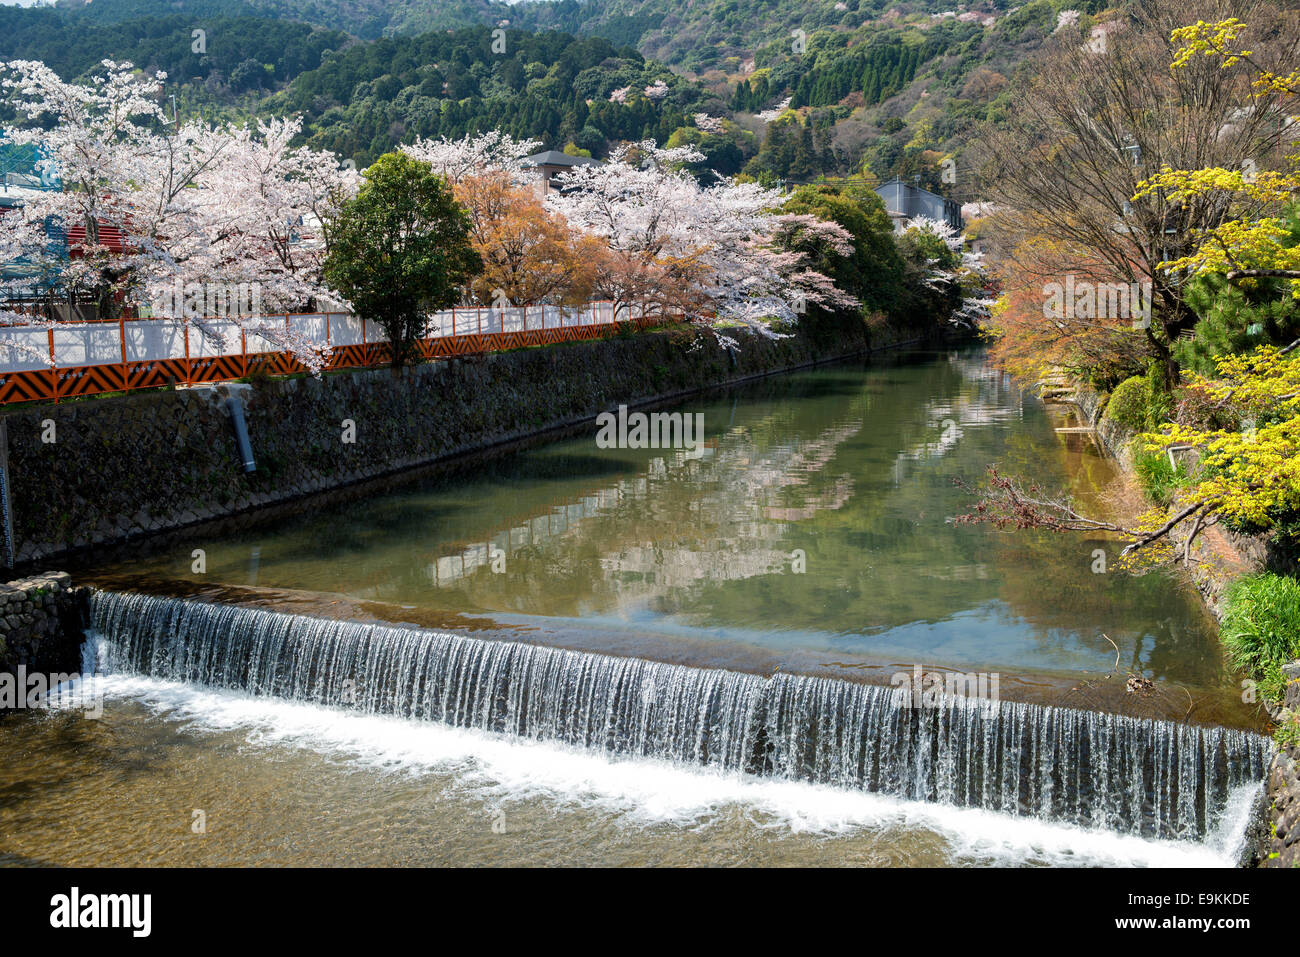 Spring in Japan - Arashiyama and Hozu river during cherry blossom in April - Stock Image